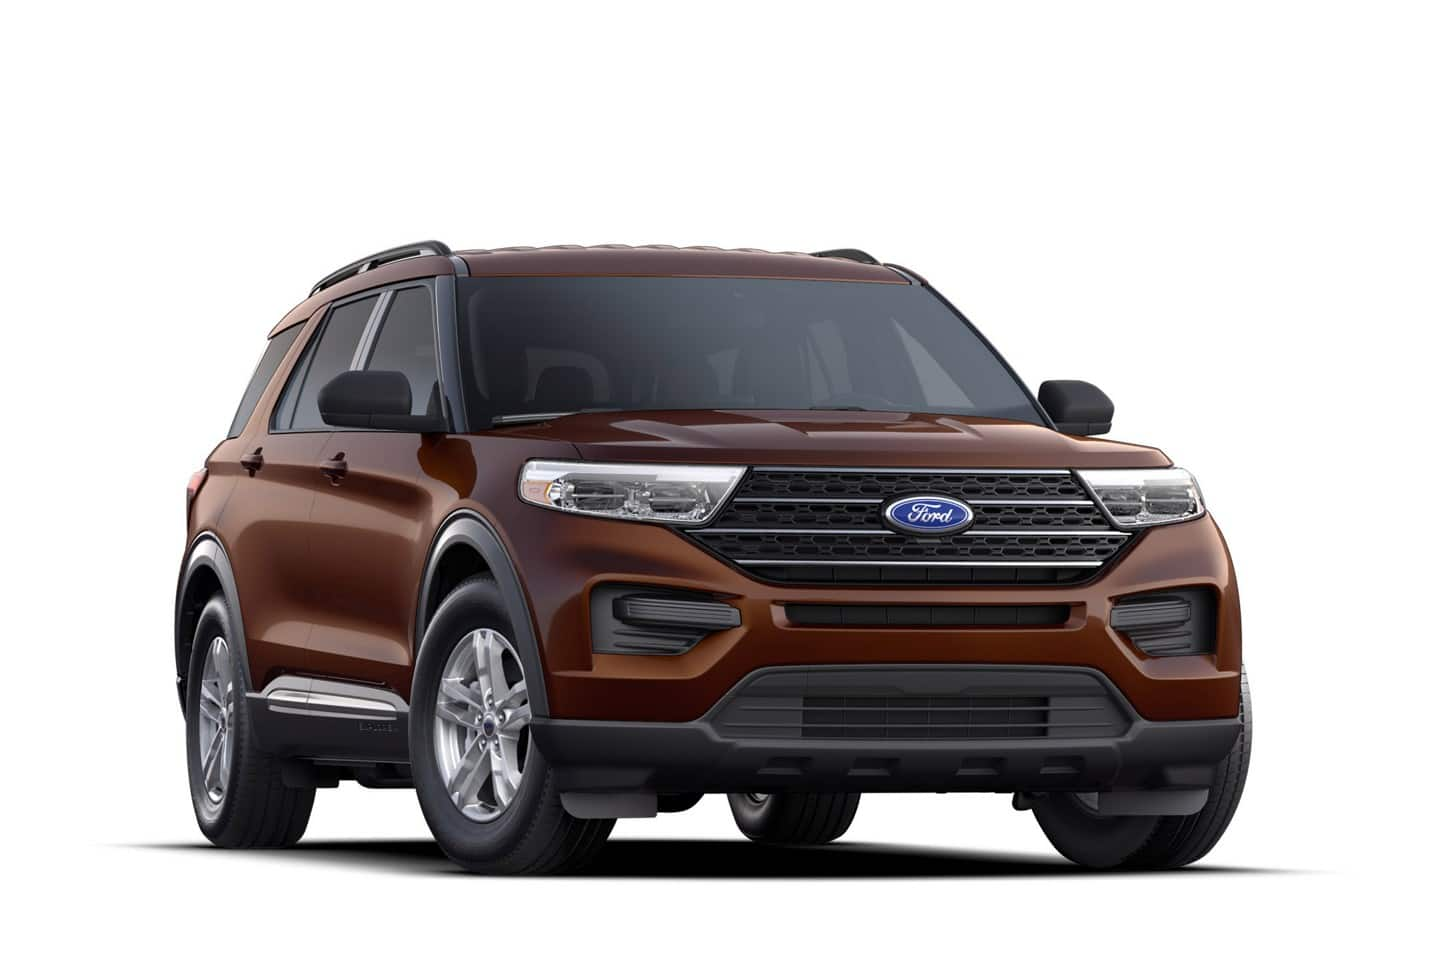 84 New 2020 Ford Explorer Youtube Redesign by 2020 Ford Explorer Youtube